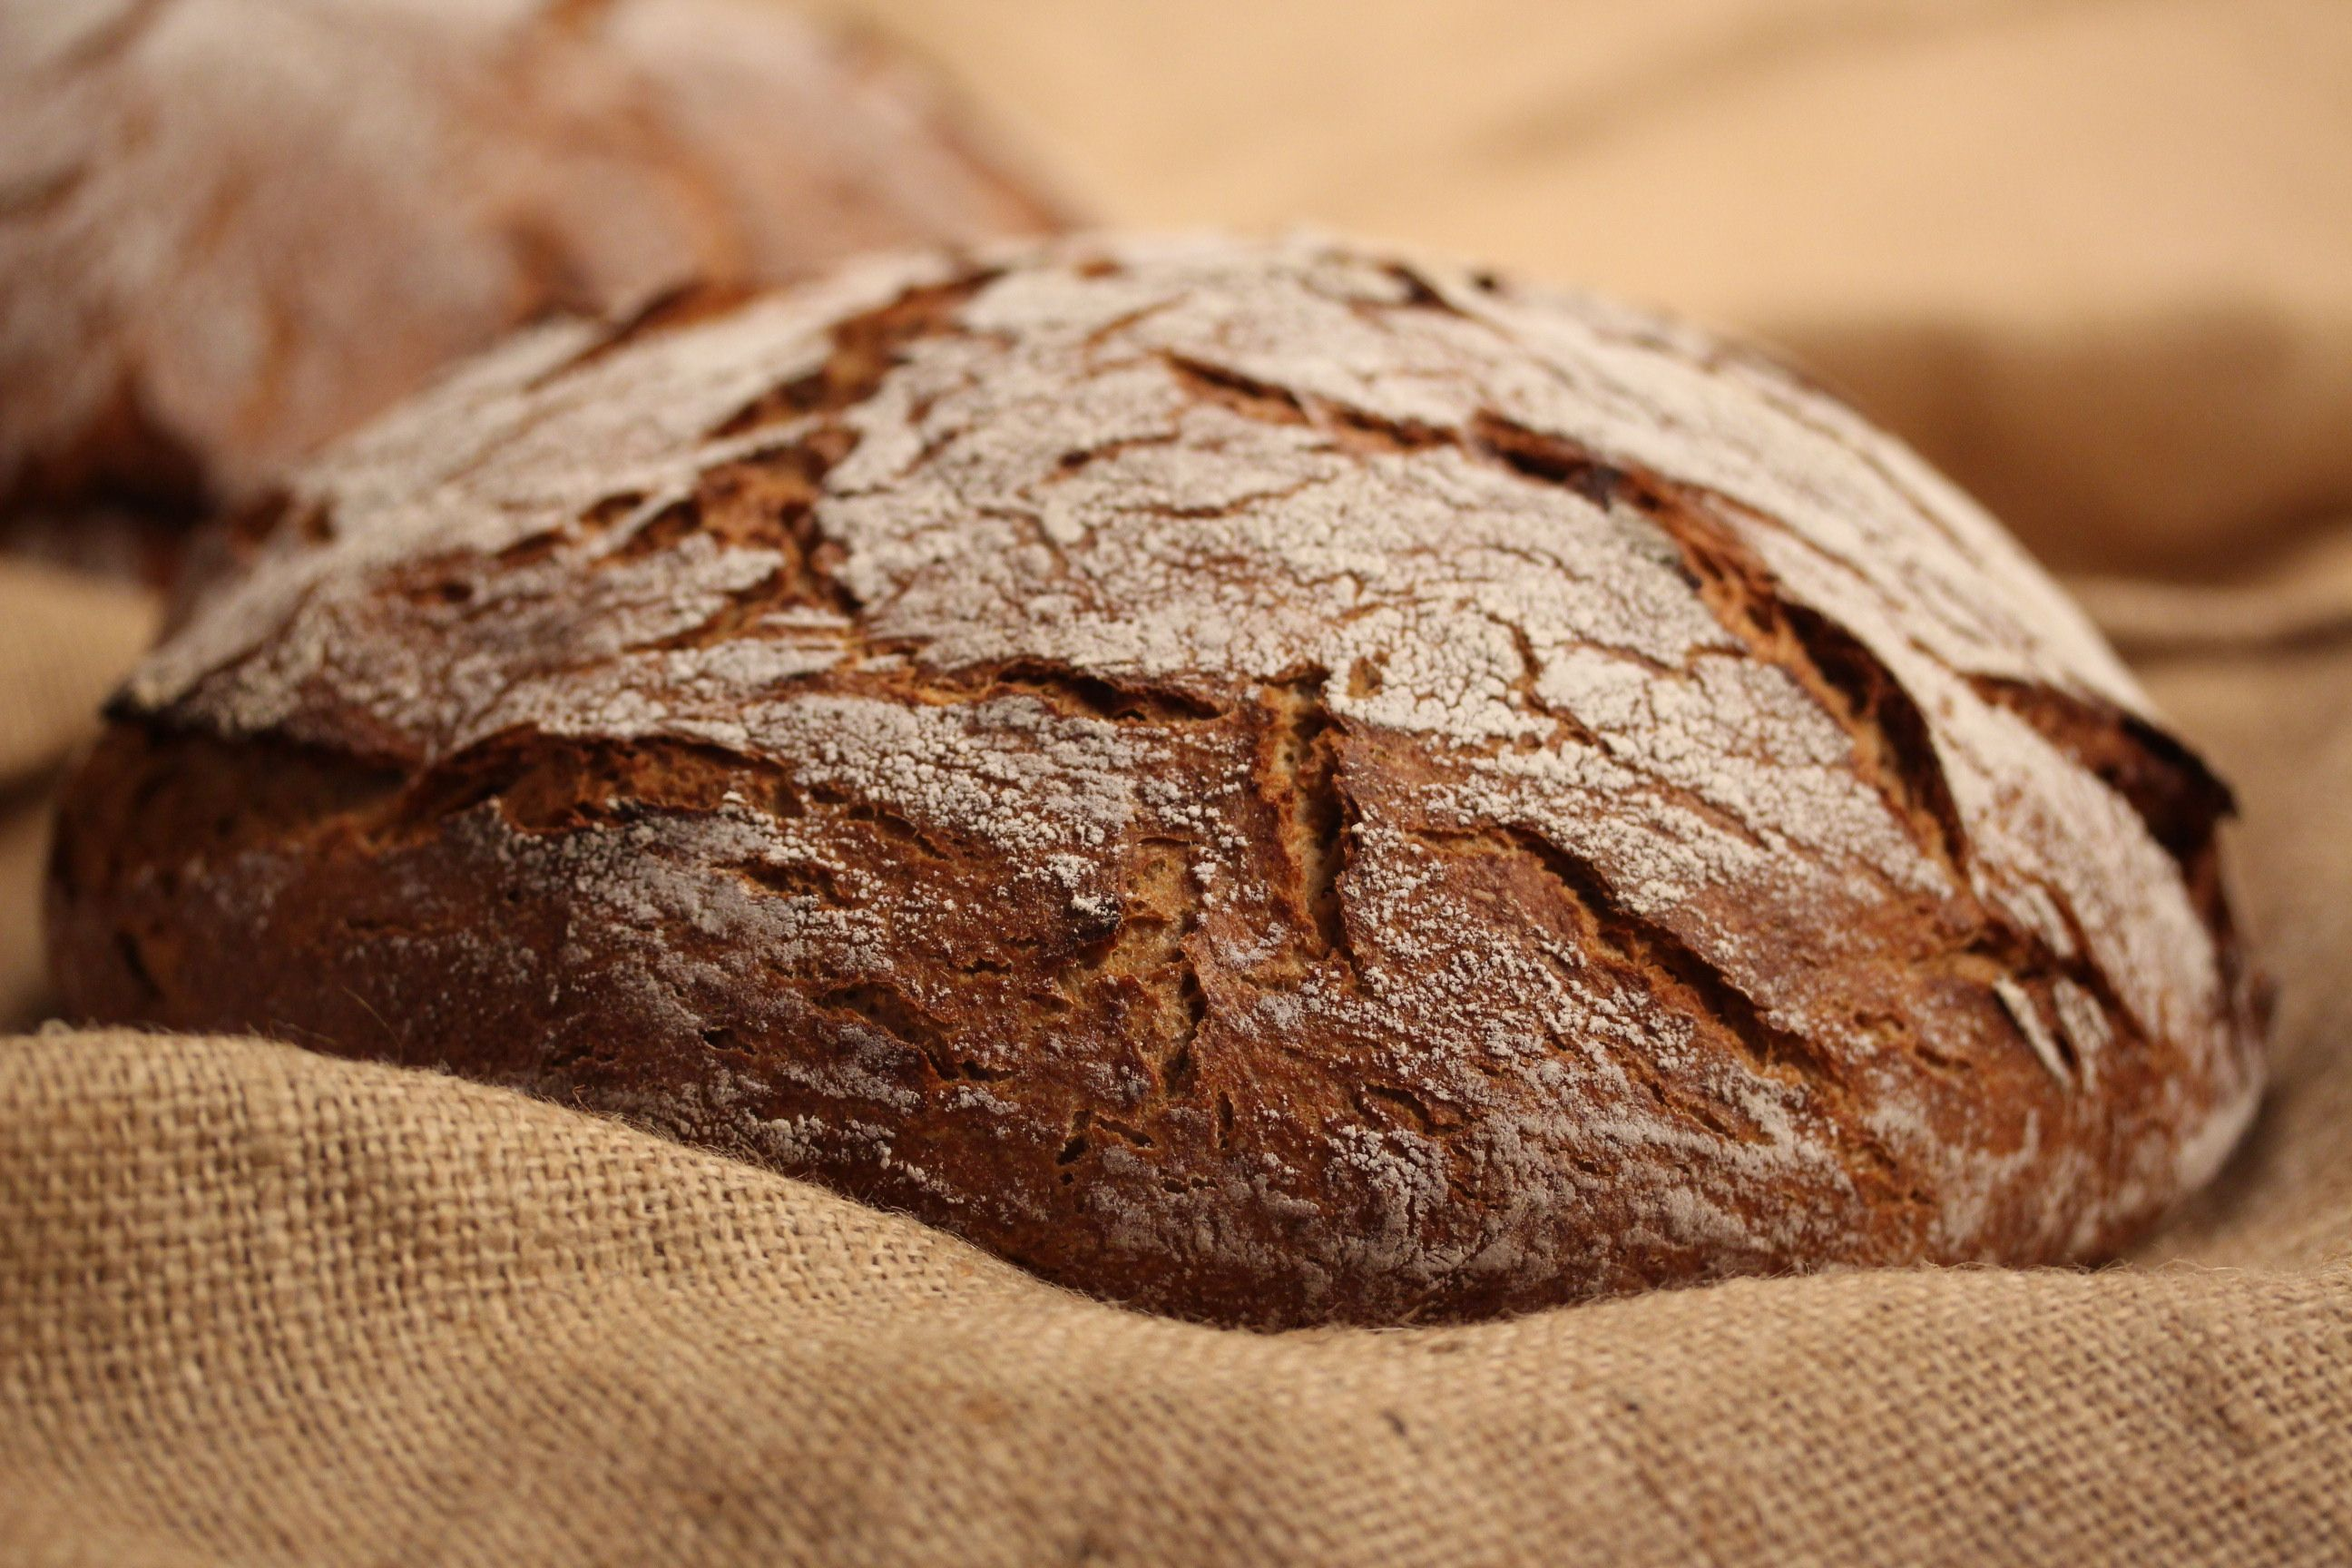 Bauernlaib - HOME BAKING BLOG - The Art of Baking